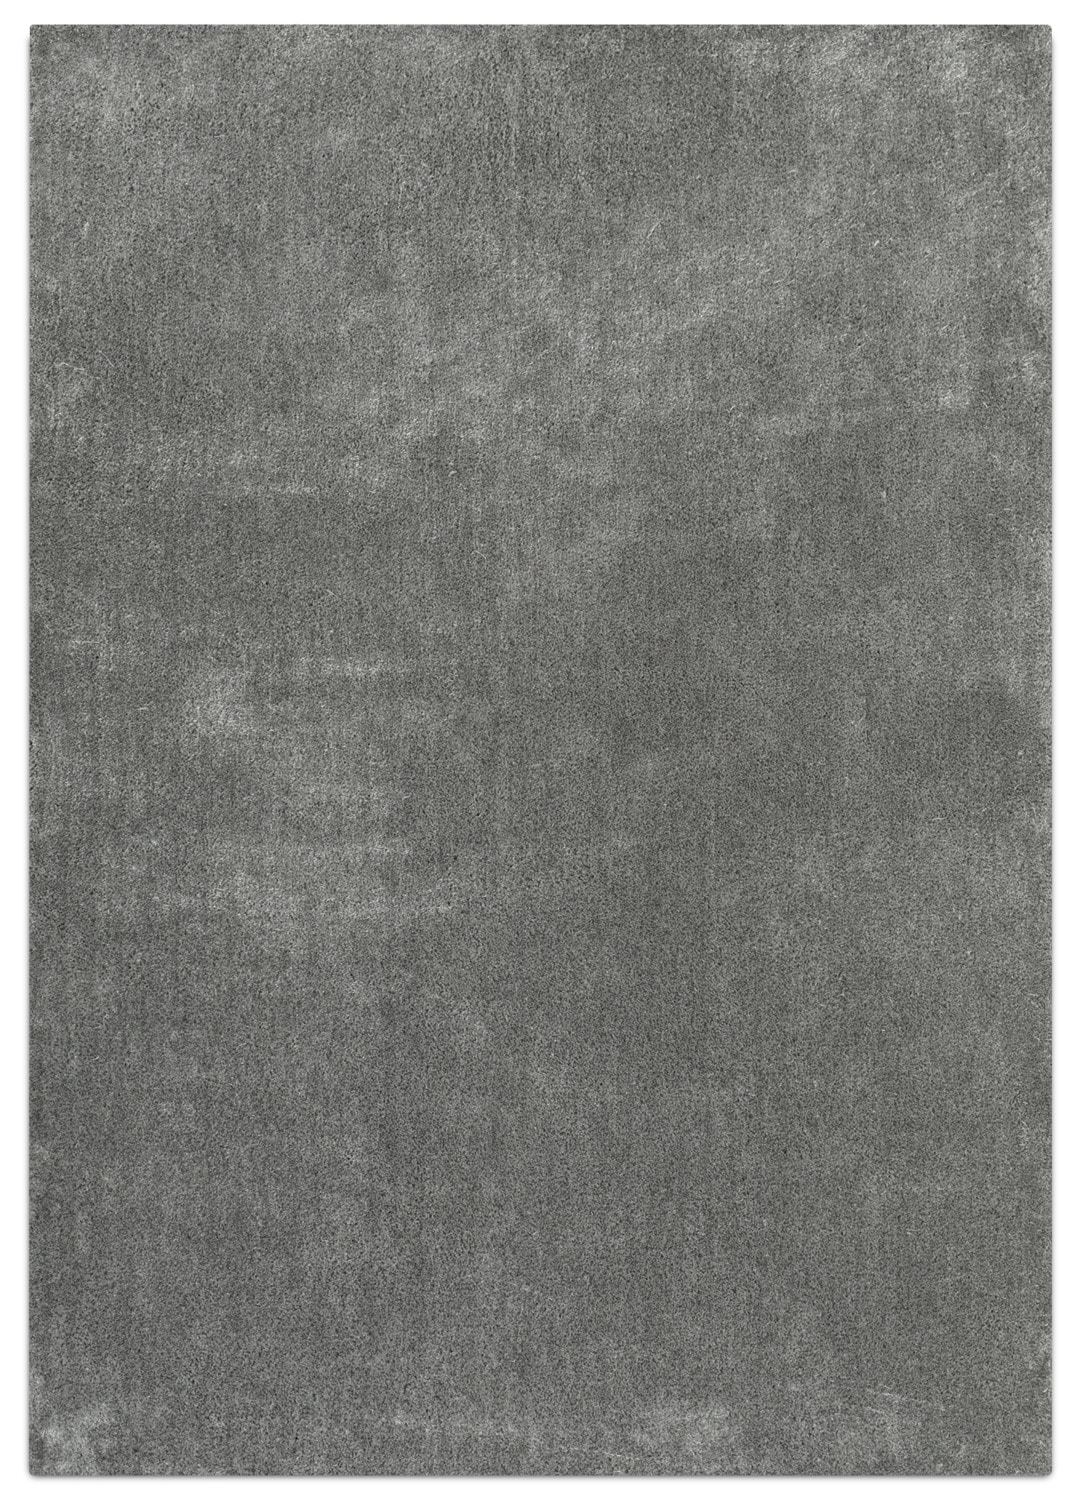 Daisy 5' X 8' Area Rug - Grey